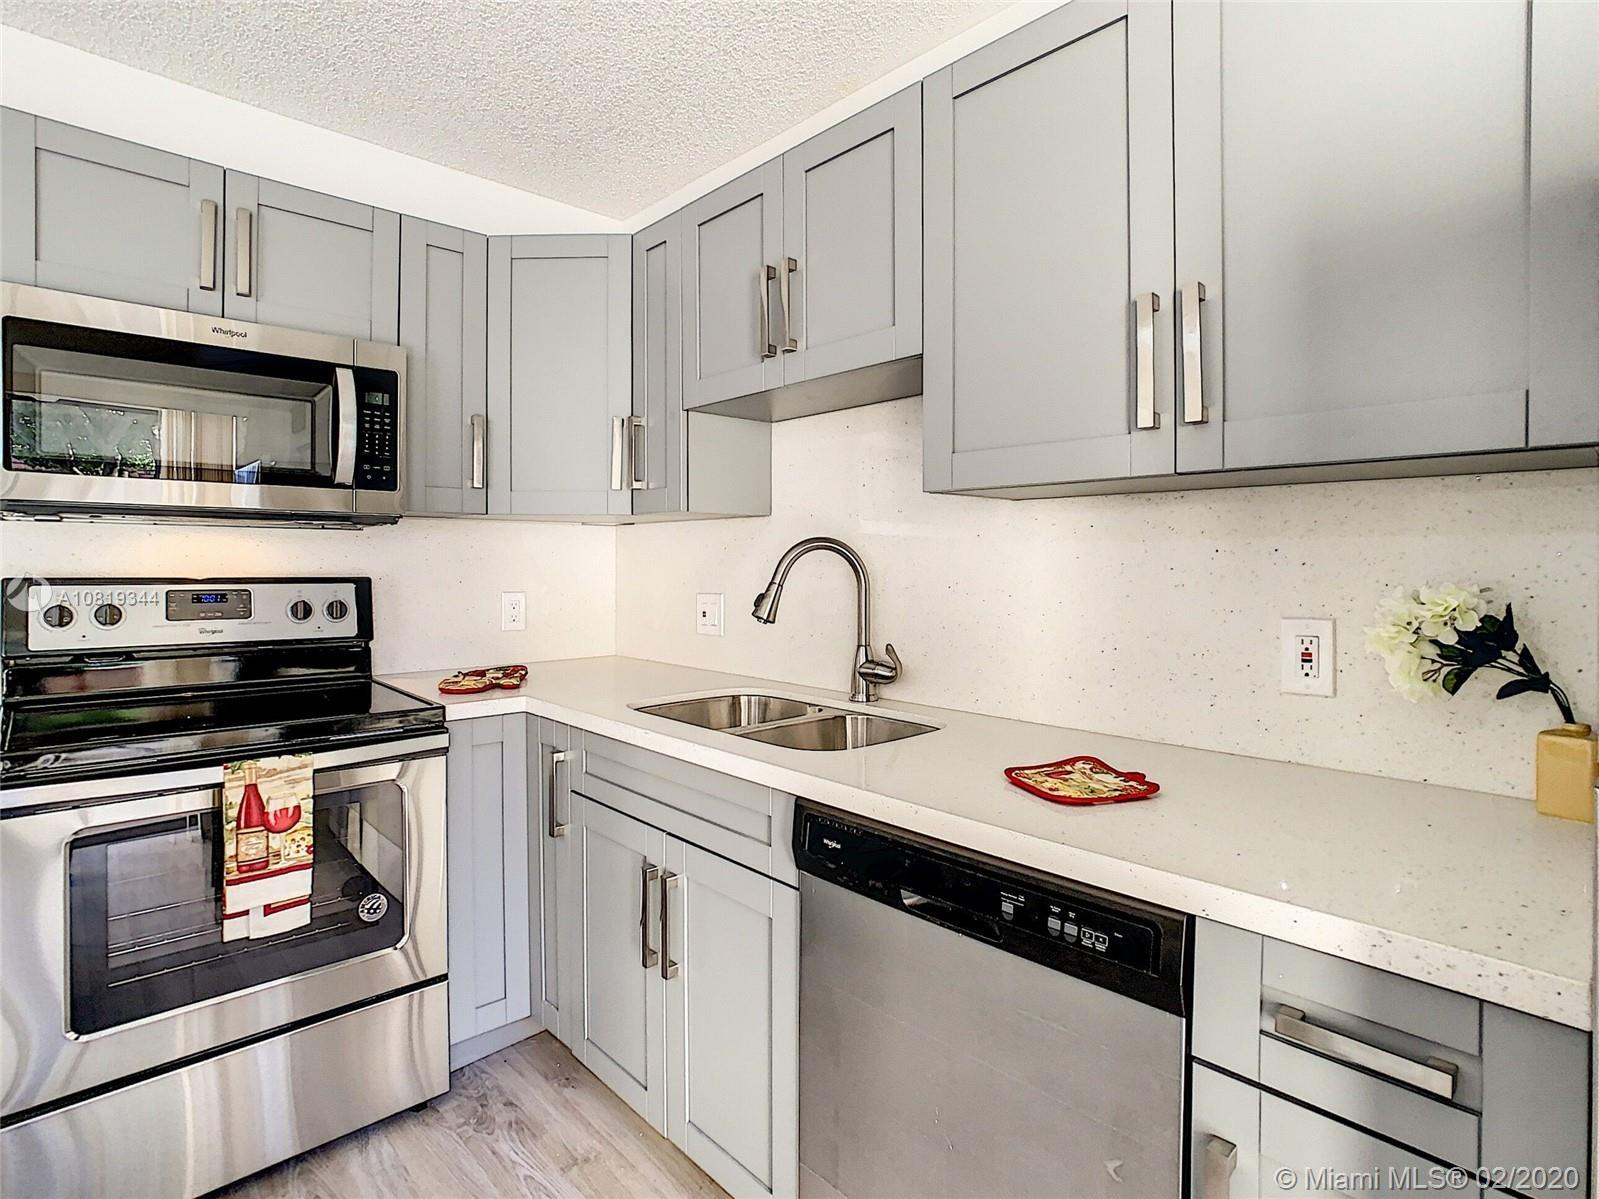 FANTASTIC 2 STORY TOWNHOUSE WITH 2 BEDROOMS AND 2.5 BATHROOMS. EXCELLENT LOCATION CLOSE TO SHOPPING,